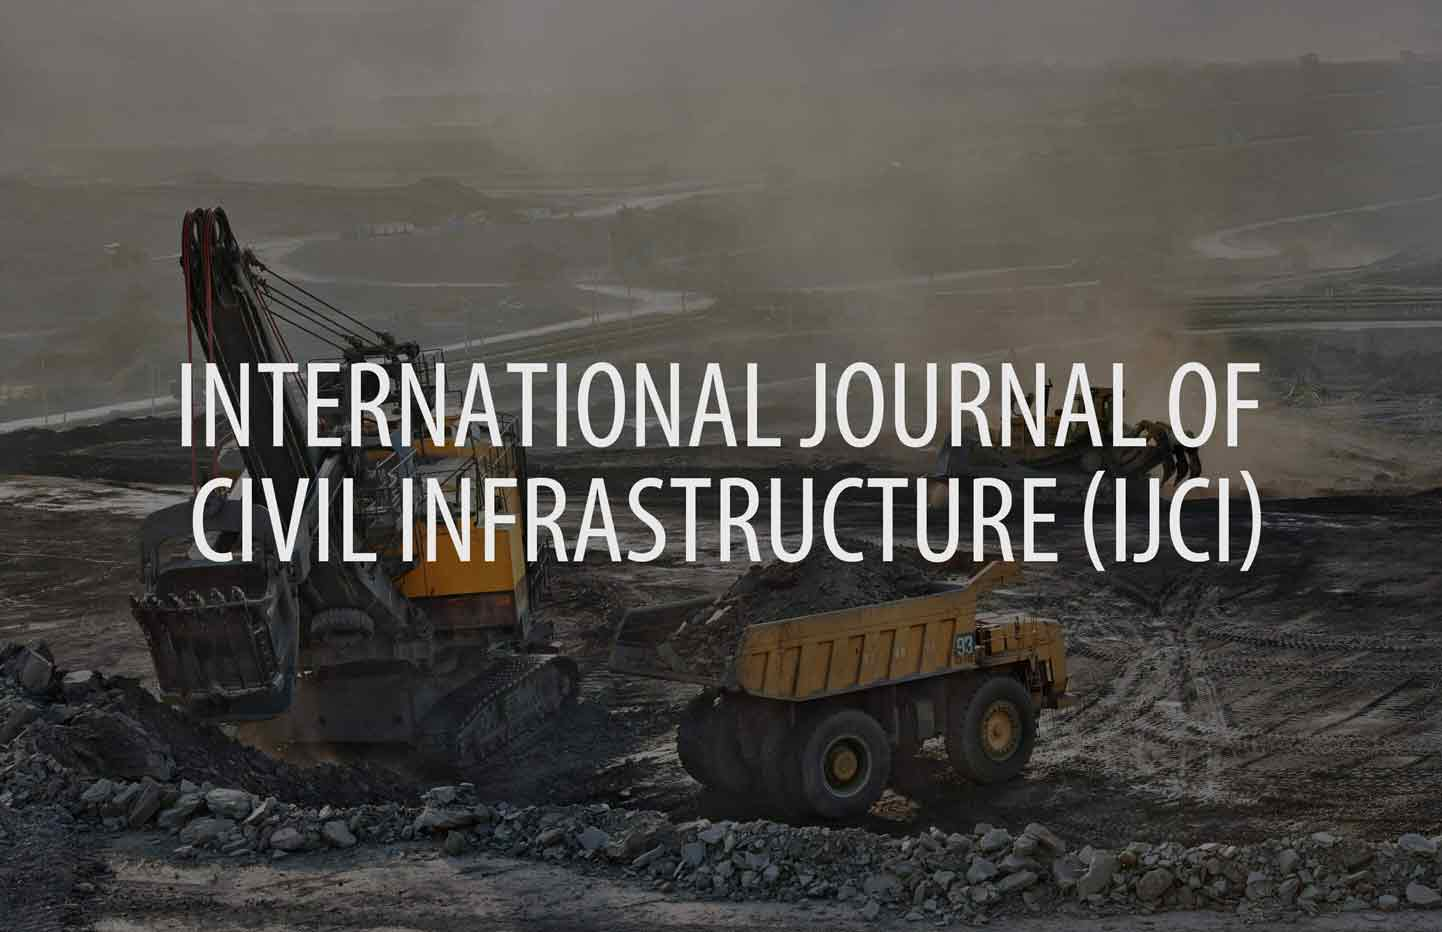 International Journal of Civil Infrastructure (IJCI)